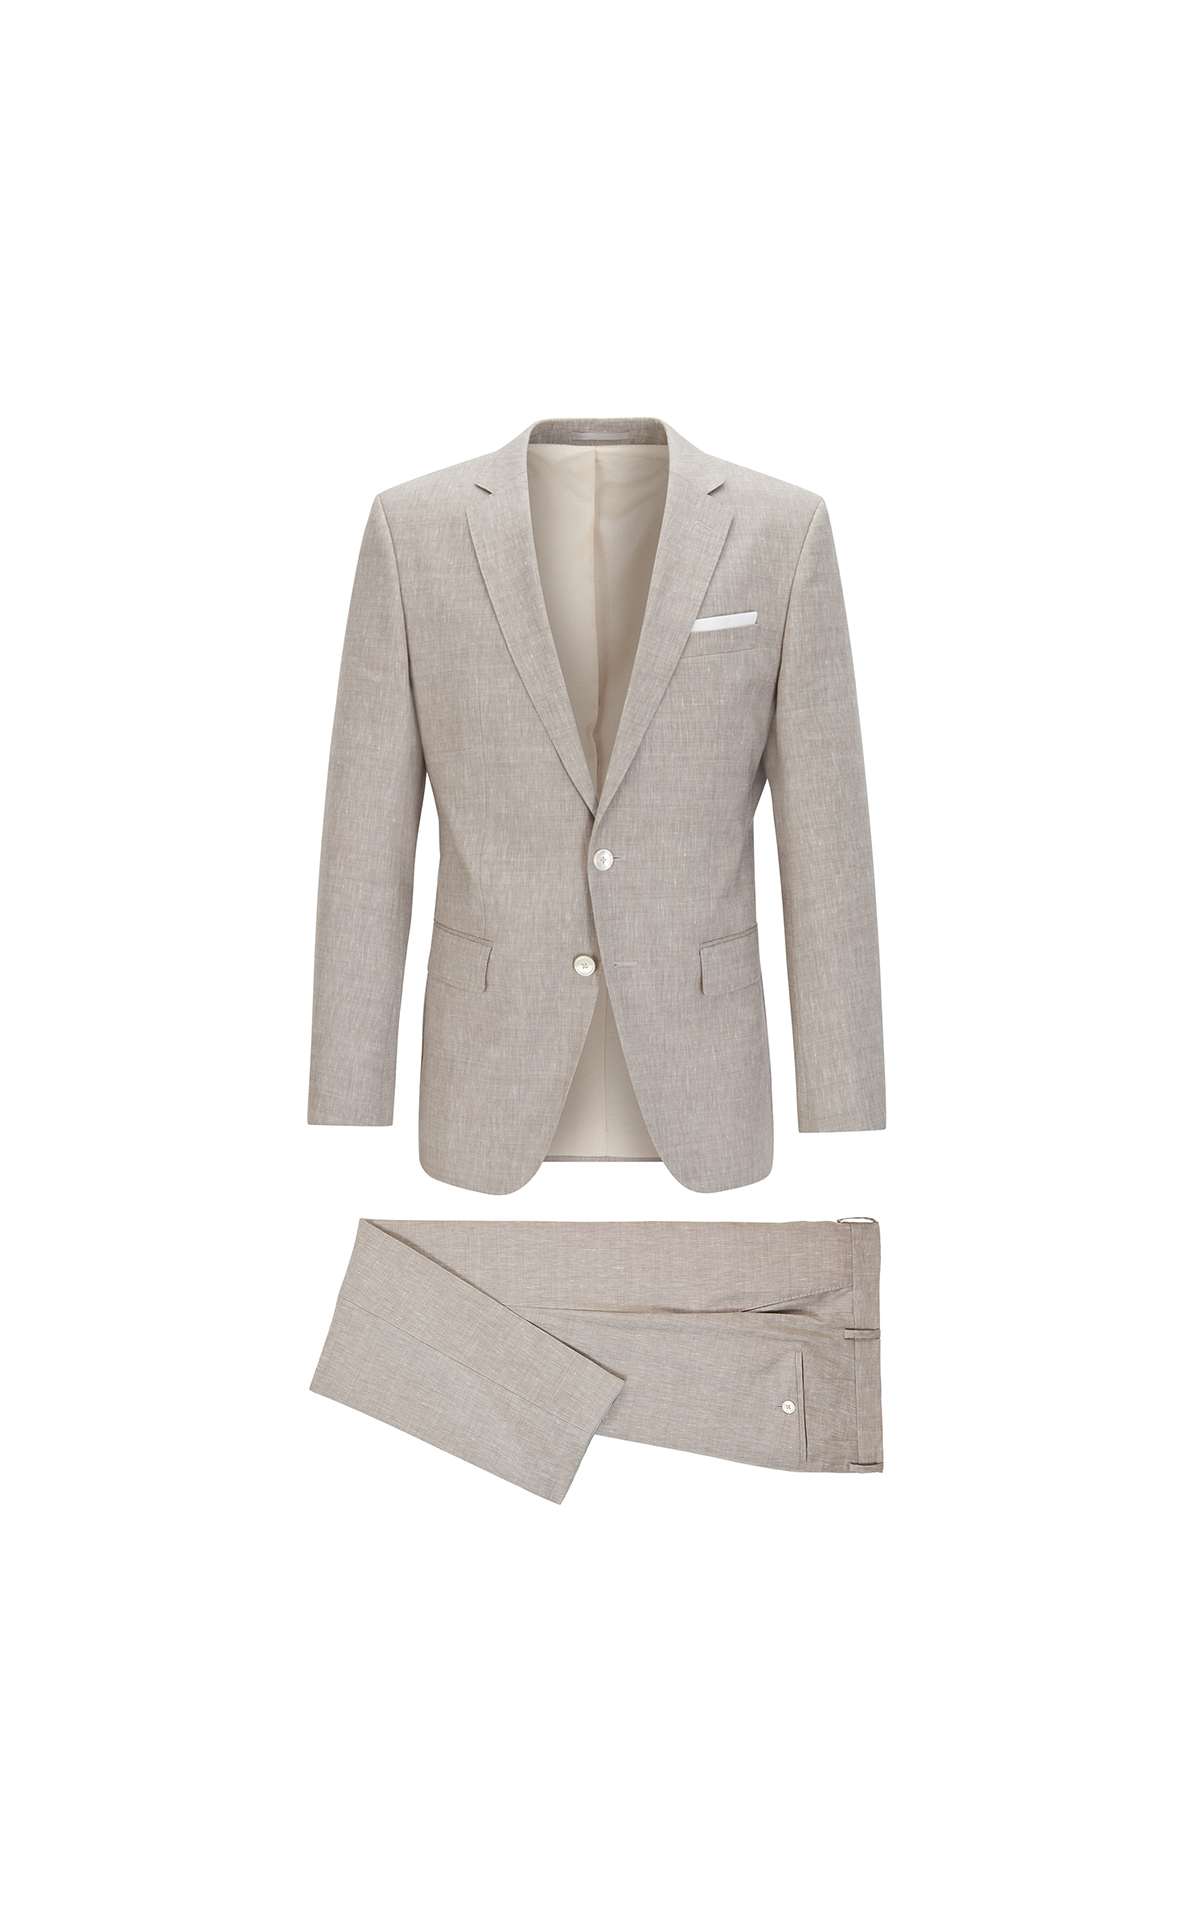 BOSS Men's slim-fit suit at The Bicester Village Shopping Collection